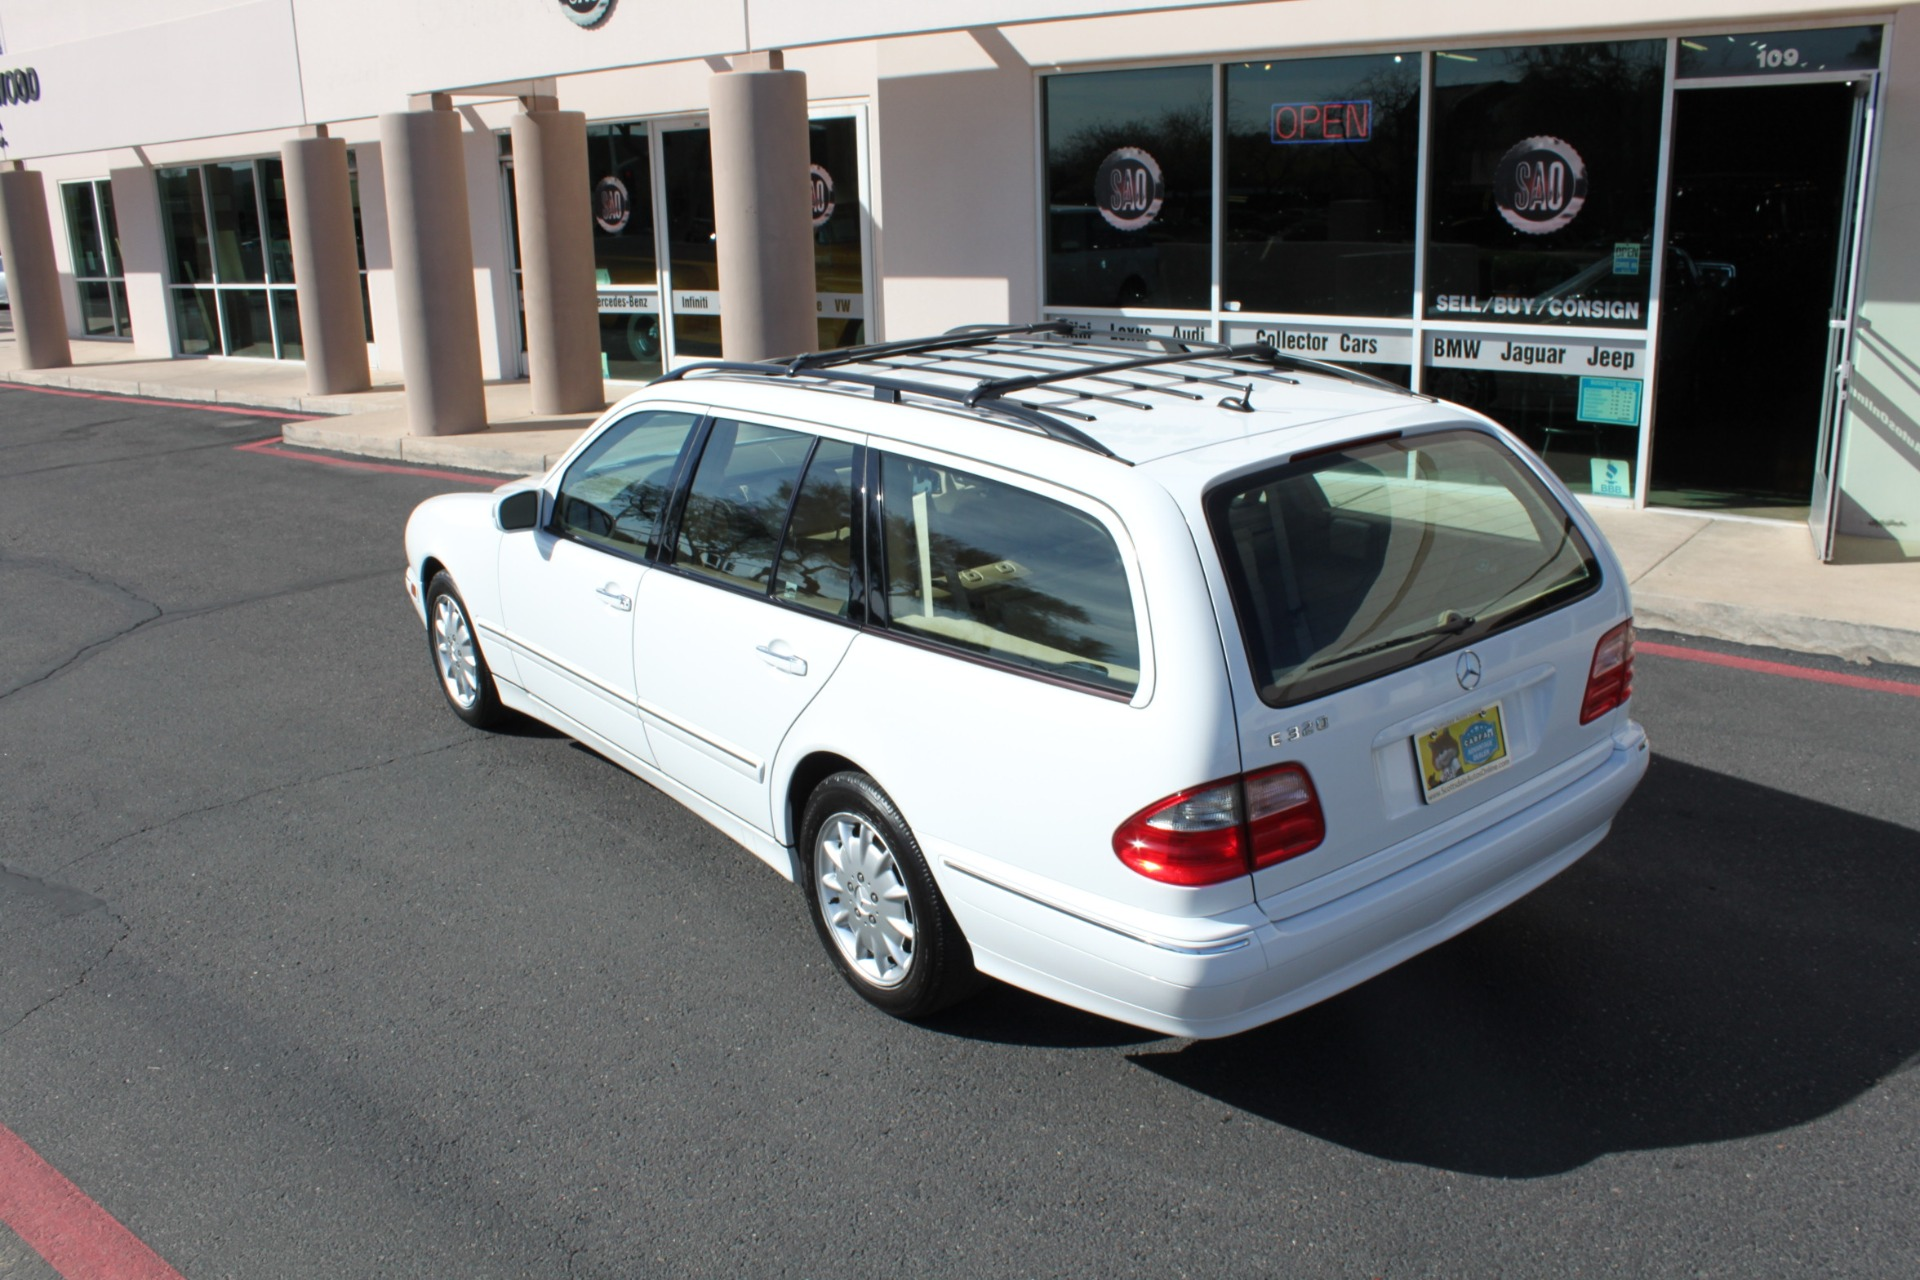 Used-2000-Mercedes-Benz-E-Class-Wagon-LS430